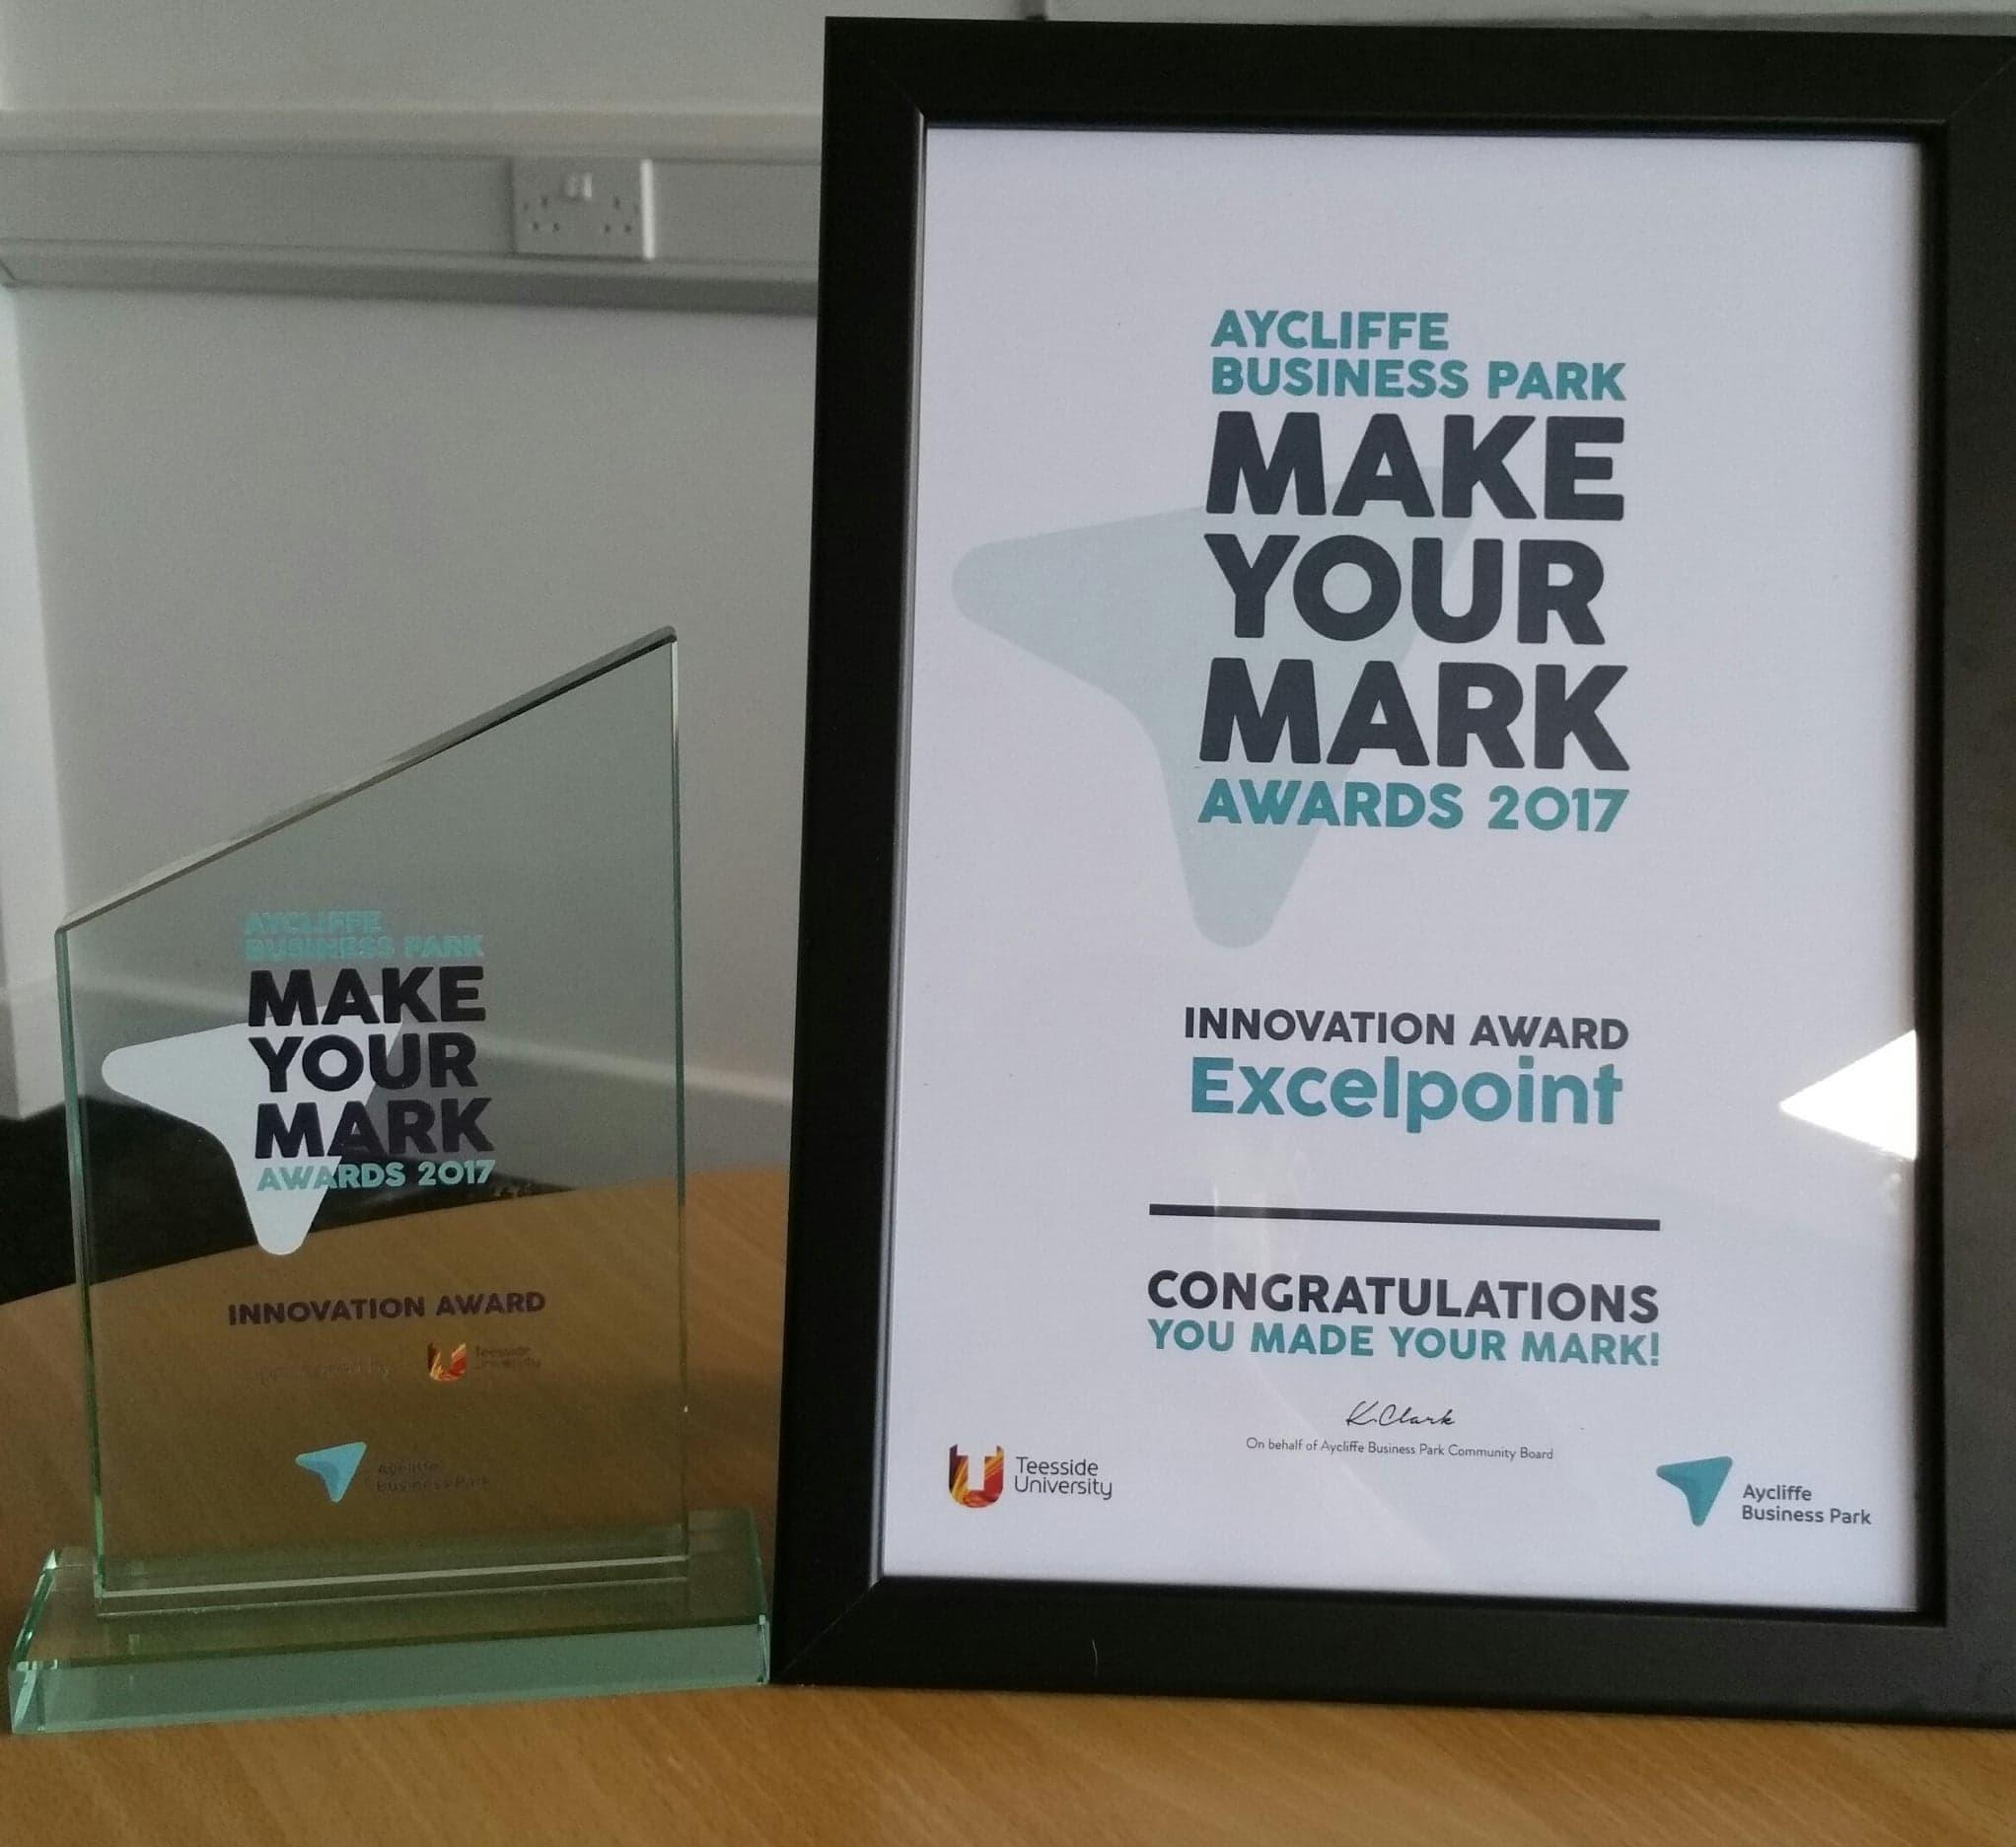 Excelpoint Innovation Certificate and Award